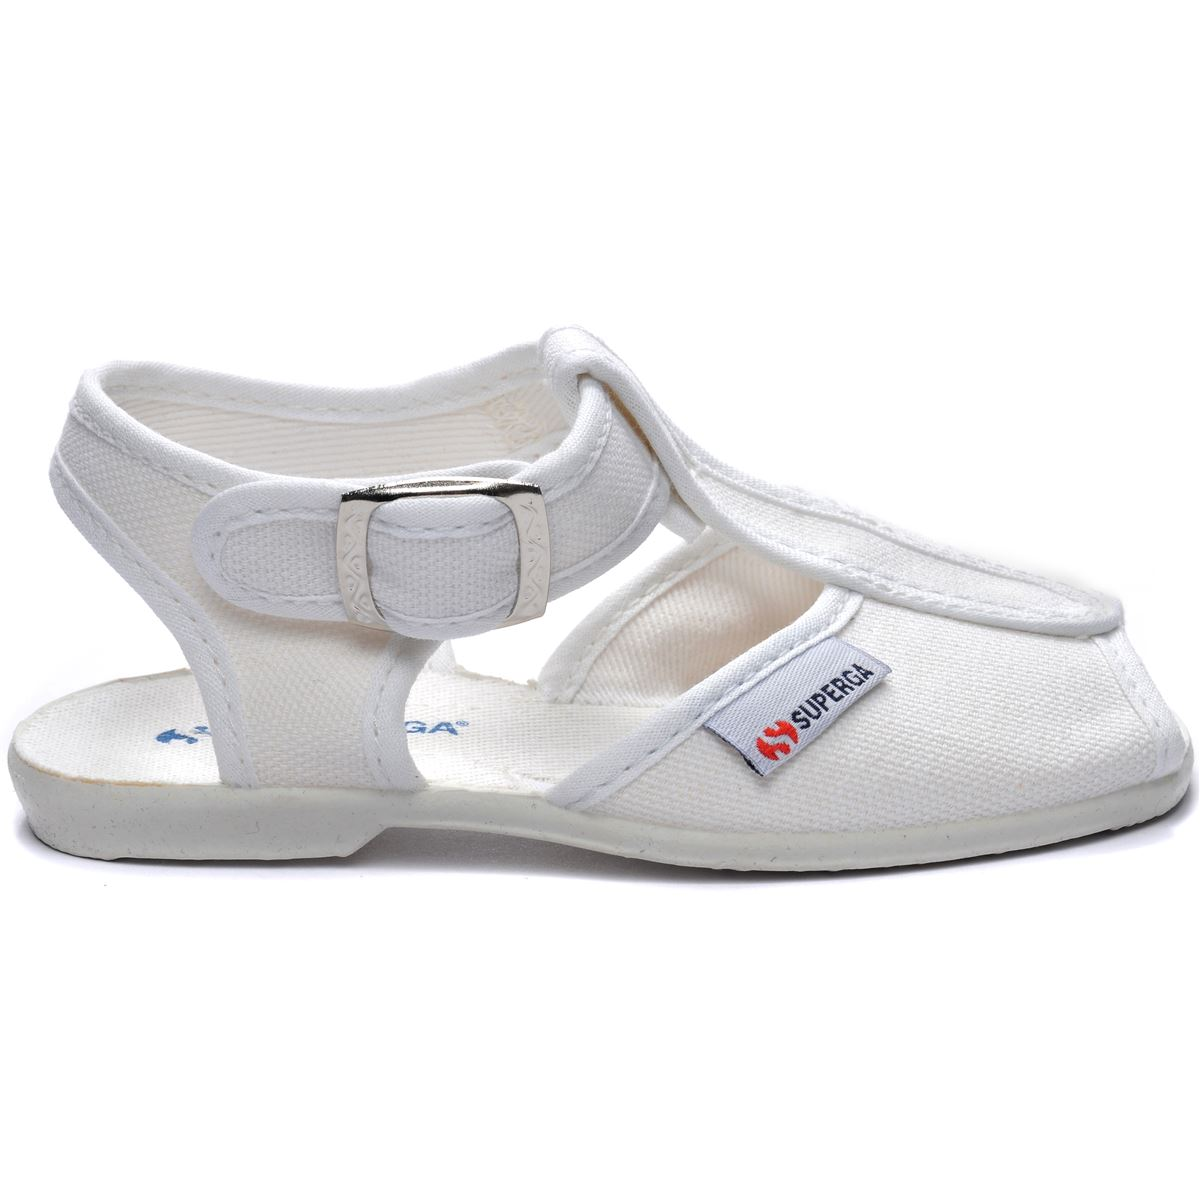 S0026x0 Women And Italian Sandals Superga Kid Men For eH29EWDYbI